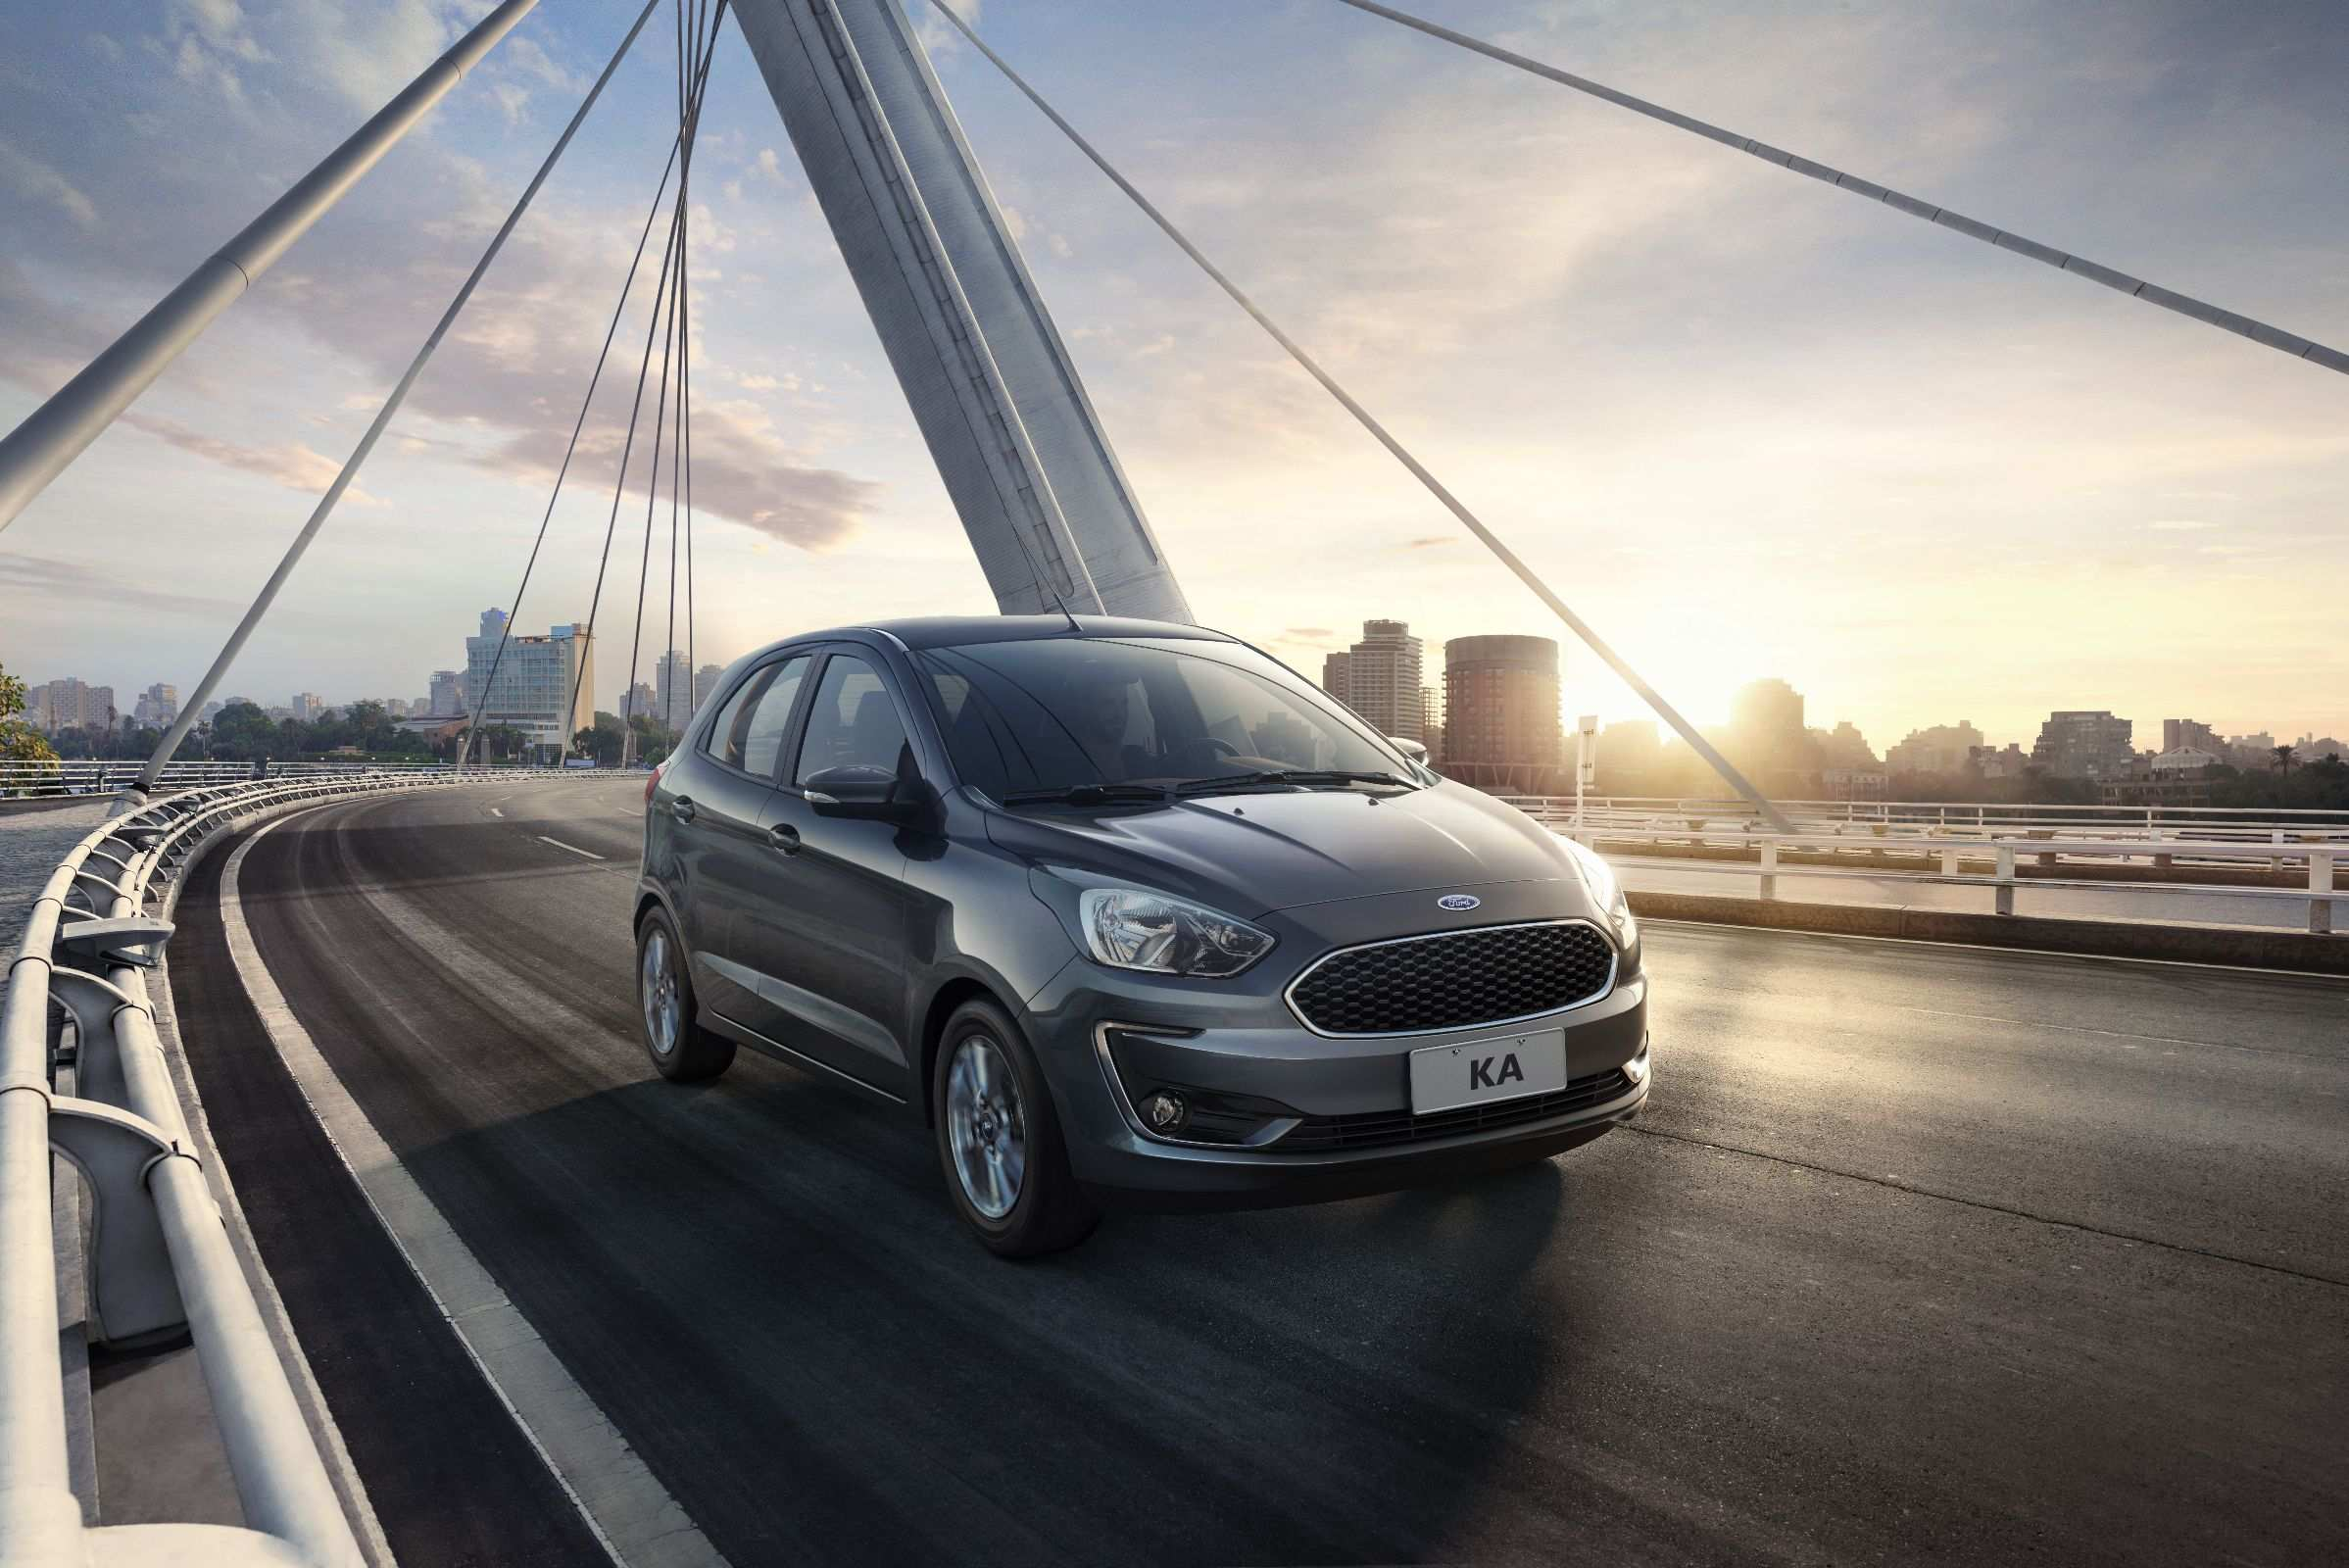 95 Gallery of Ford Ka 2019 Facelift Style with Ford Ka 2019 Facelift